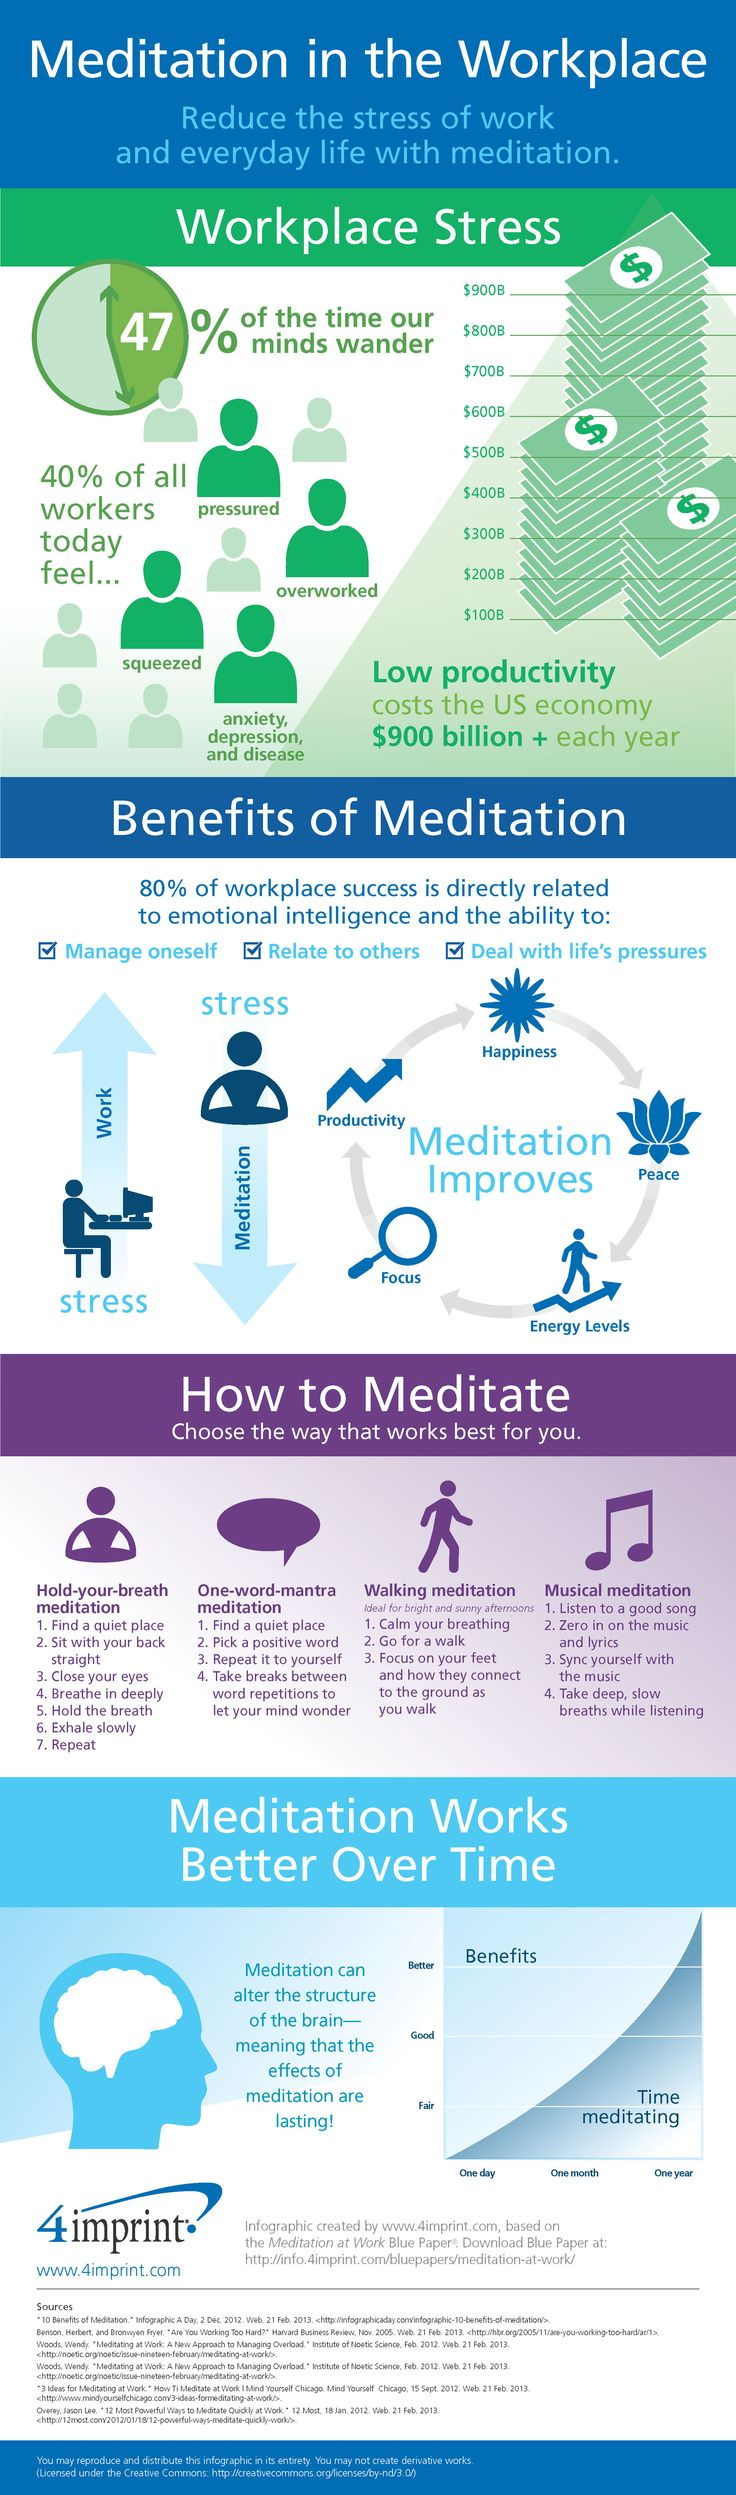 Meditation in the Workplace [INFOGRAPHIC] | 4imprint Promotional Products Blog